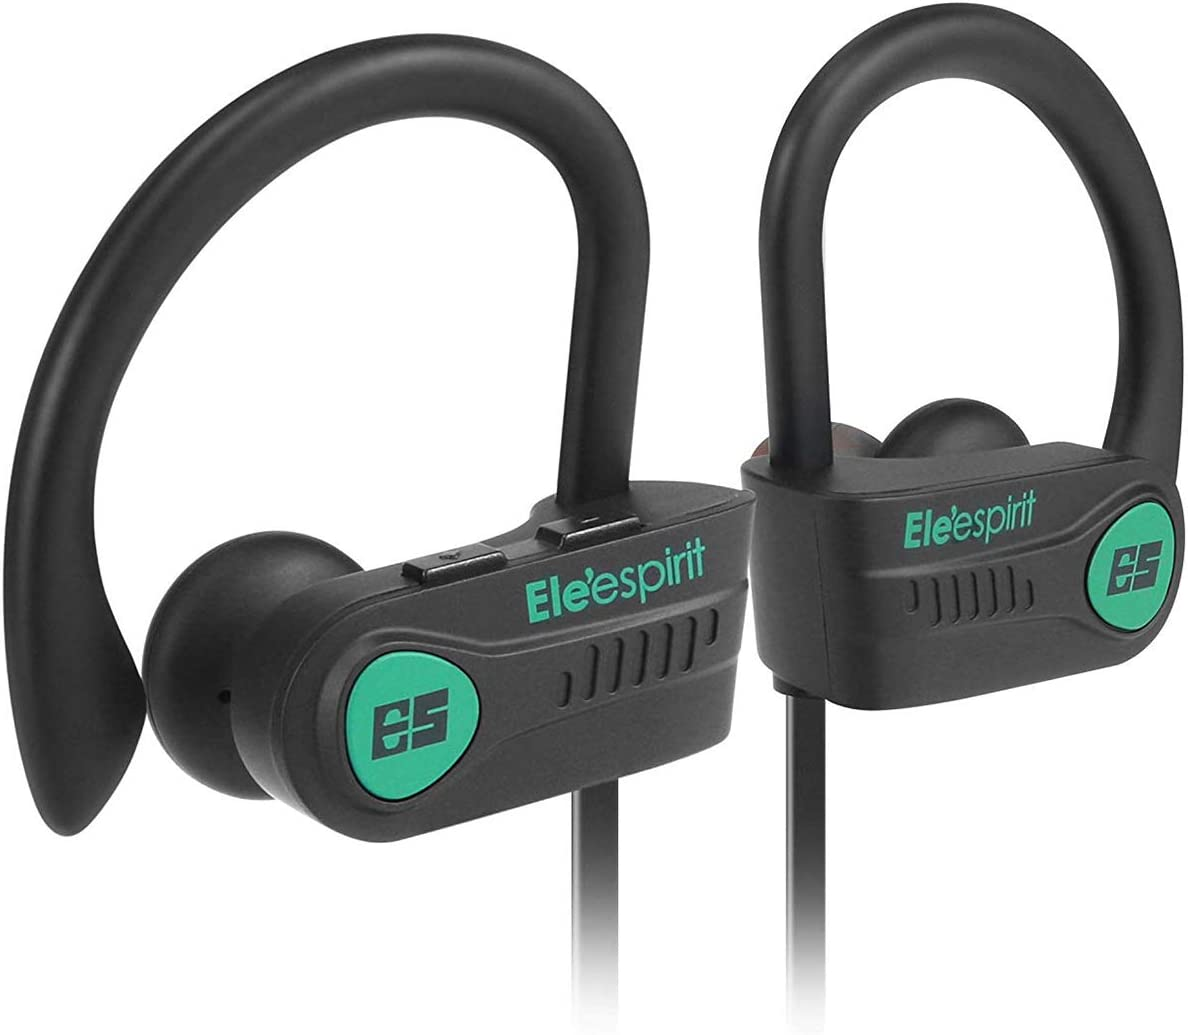 ELE ESPIRIT 7.5 Wireless Running headsets – Top 2019 Headphones SENSATIONAL CONNECTIVITY – 300 METRES or 985 FT, Bluetooth 5.0 IPX7 Waterproof, Rugged Workout Earphones, One year at-home warranty.